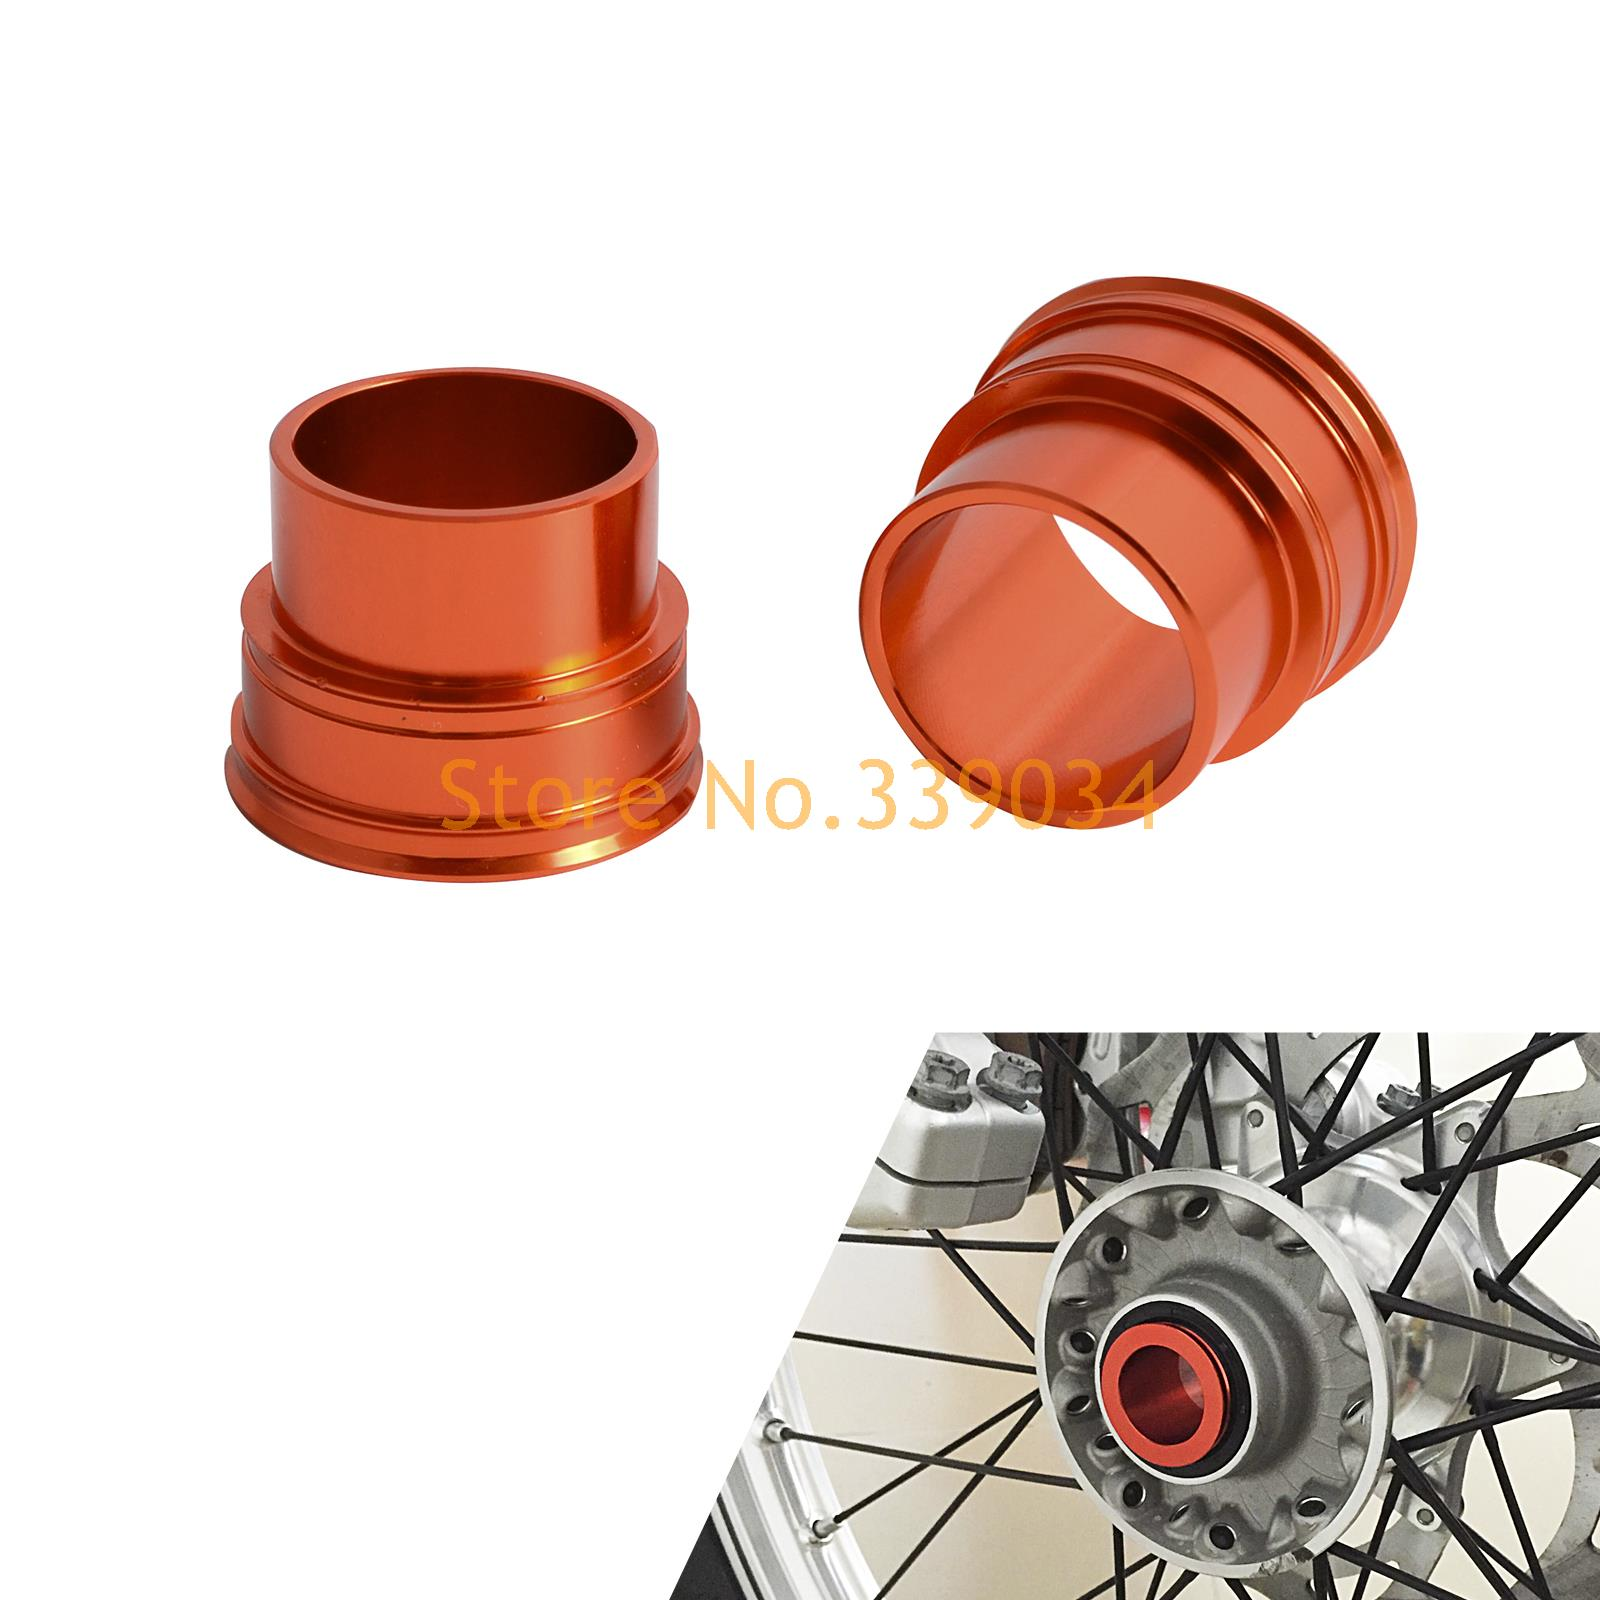 NICECNC Front Wheel Hub Spacers Collars For KTM 125 250 350 450 525 530 SX SXF XCF EXC EXCF EXCW XCW SMR 690 Duke Enduro 03-2016 motorcycle front rider seat leather cover for ktm 125 200 390 duke